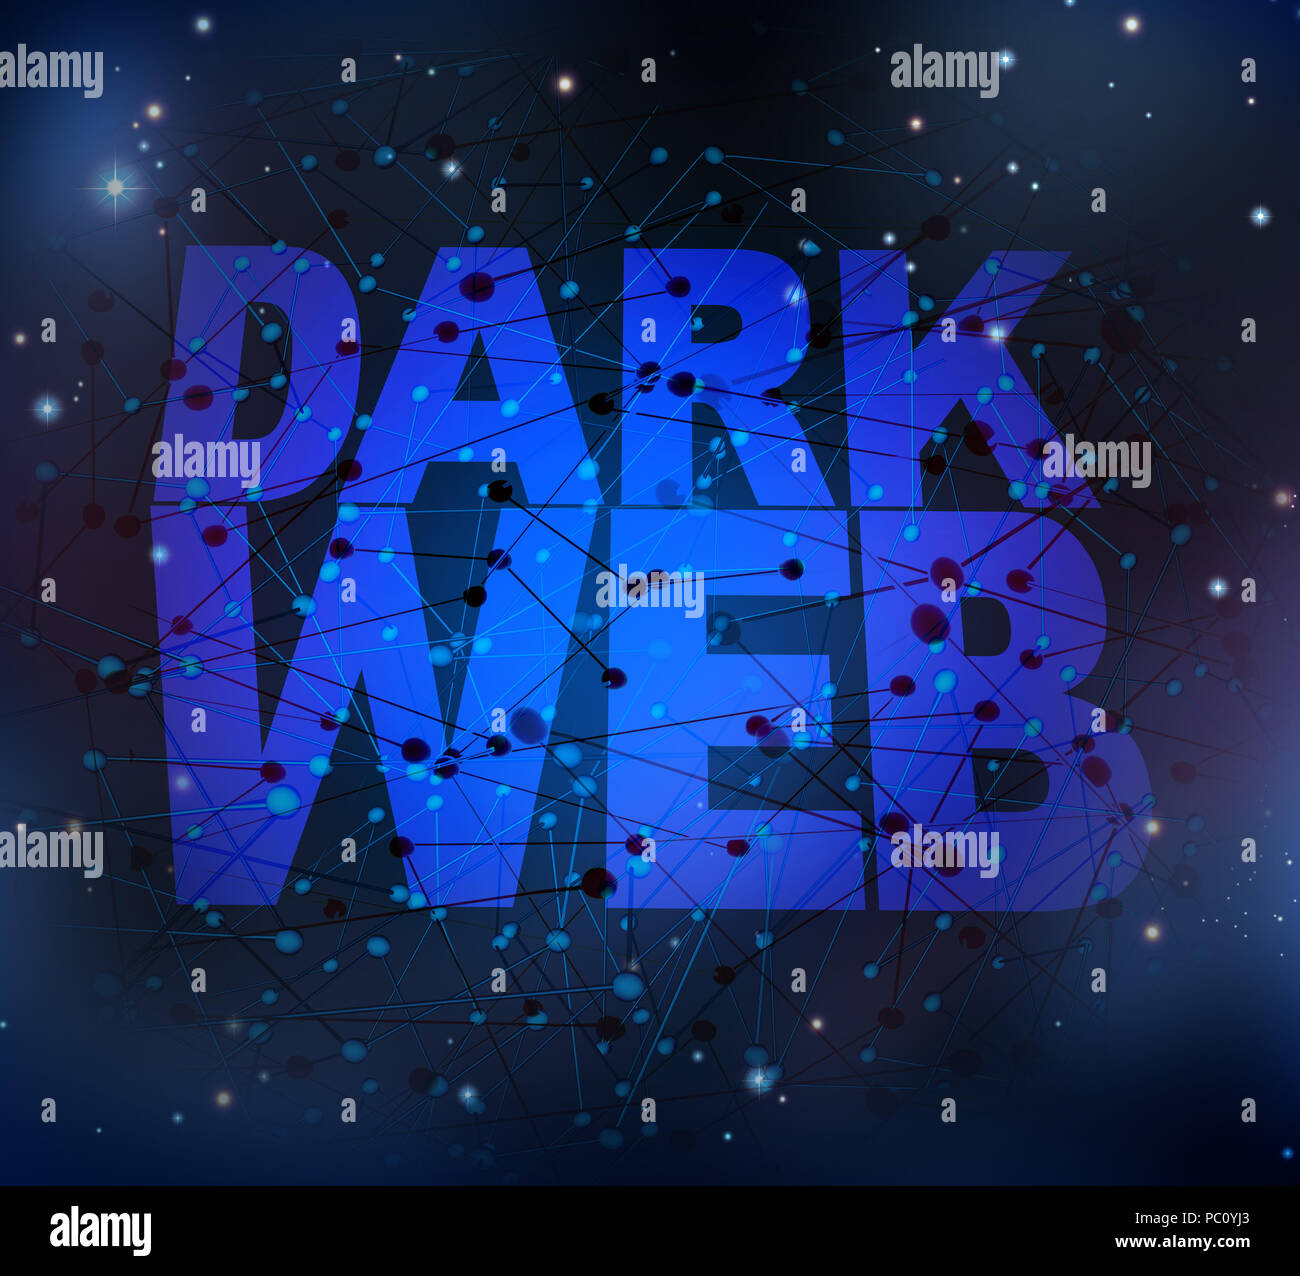 Dark web symbol and hidden internet technology as a hidden website in cyberspace and secret search engines for the deepnet as a network group . - Stock Image